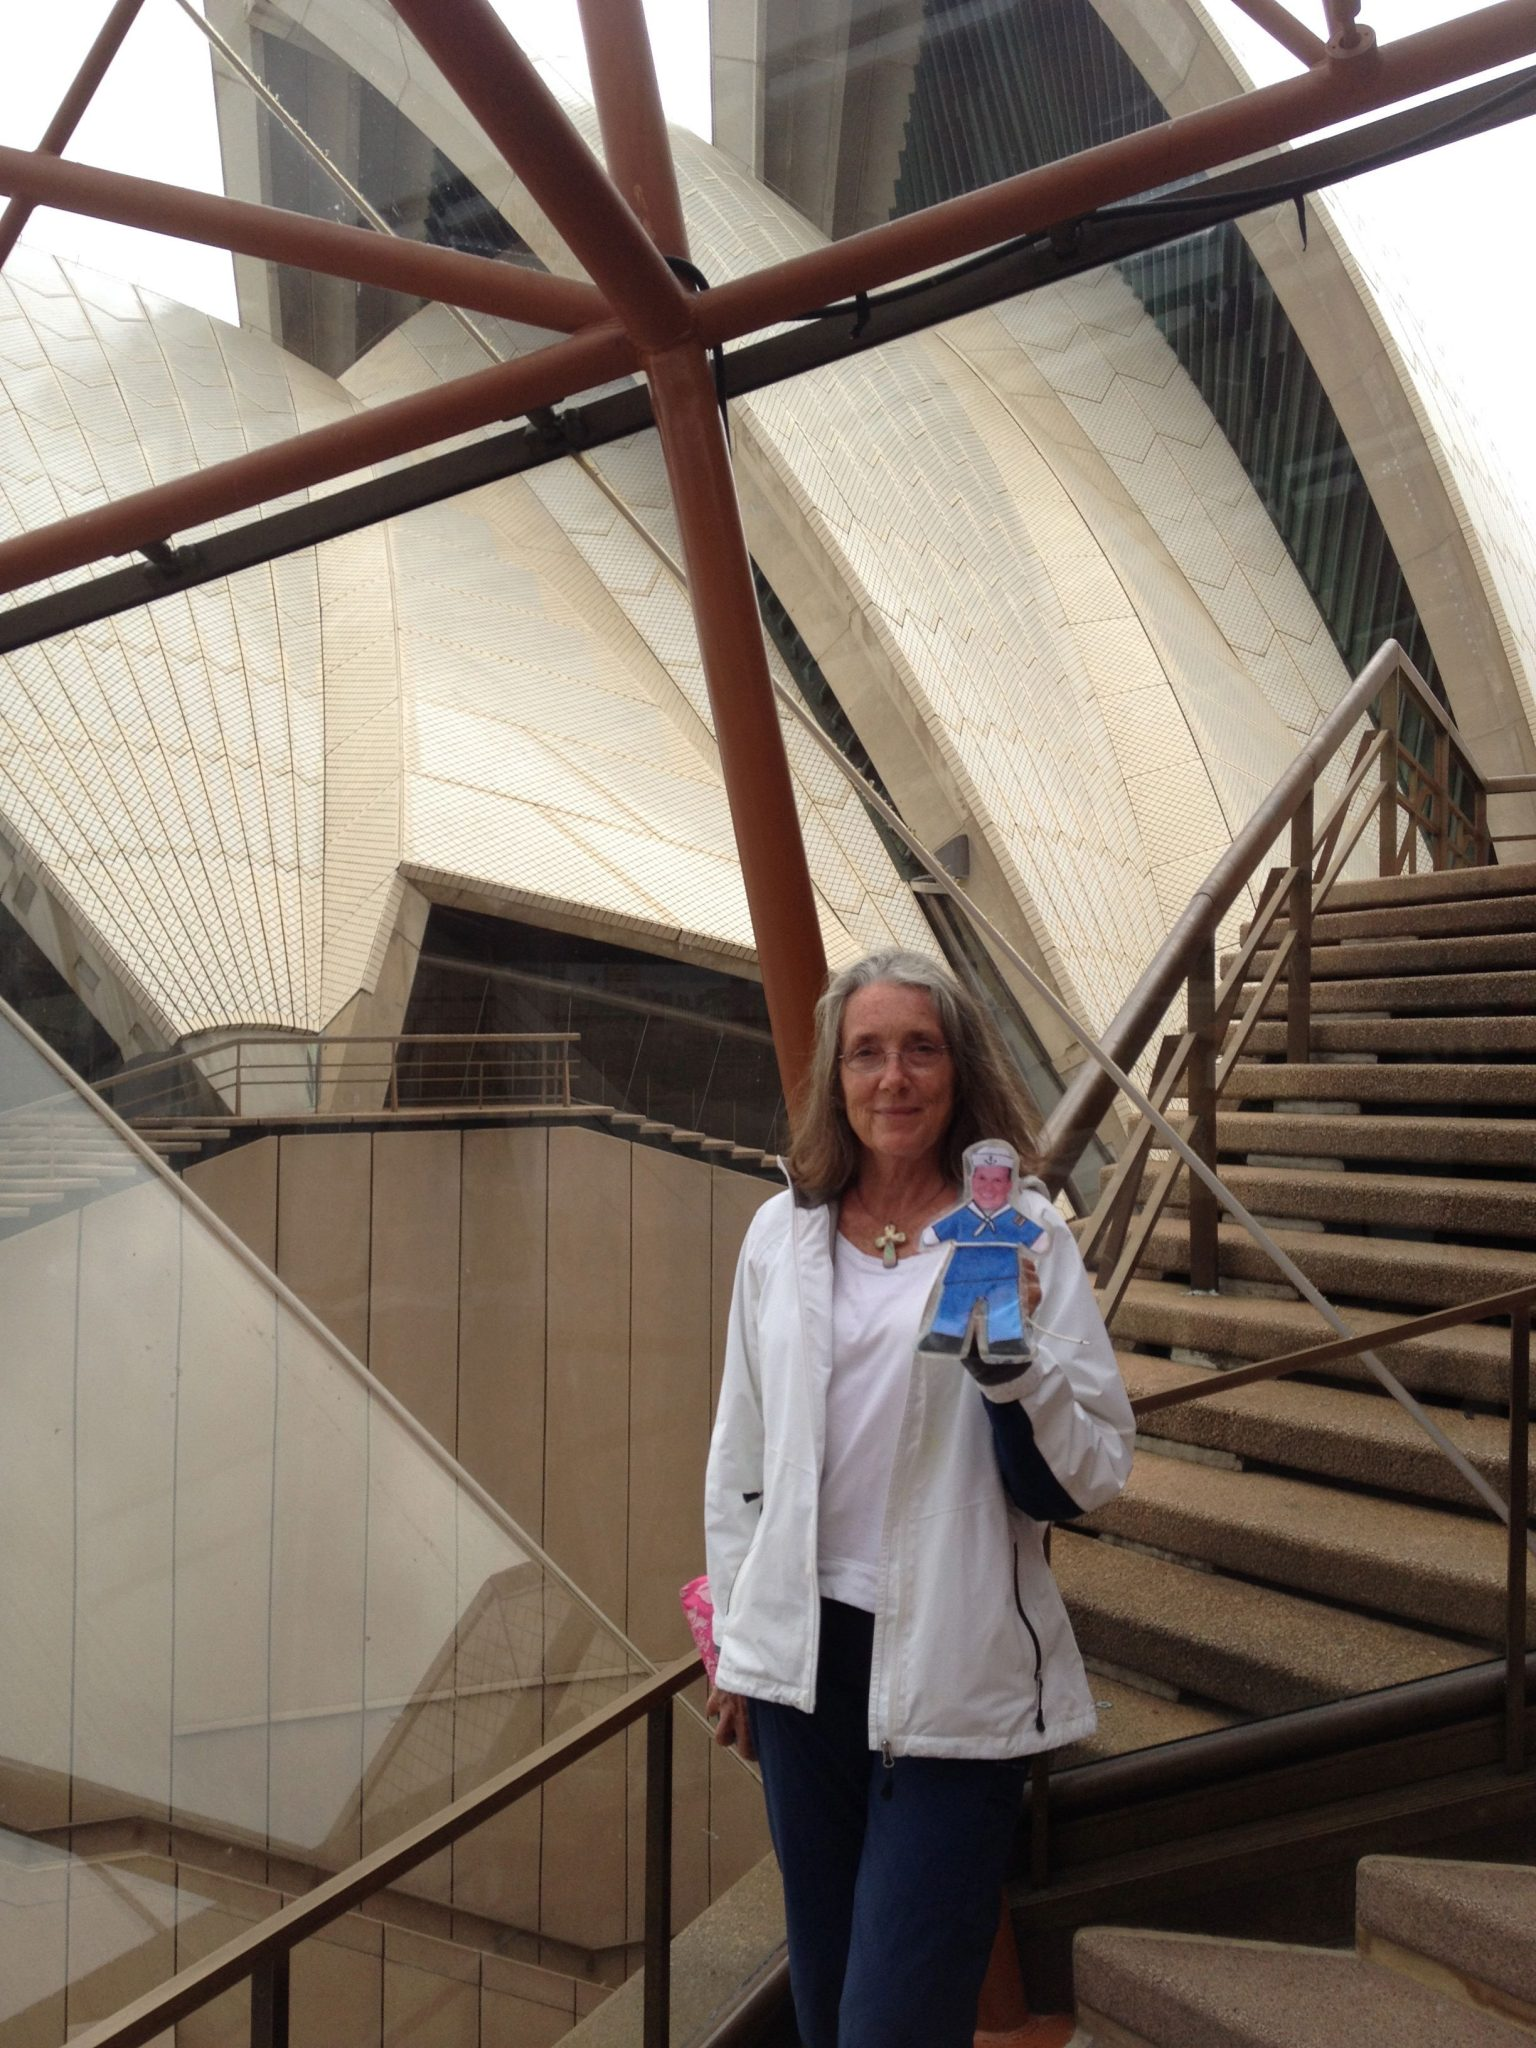 109. Flat Mr. Davis and Anne at the Sydney Opera House